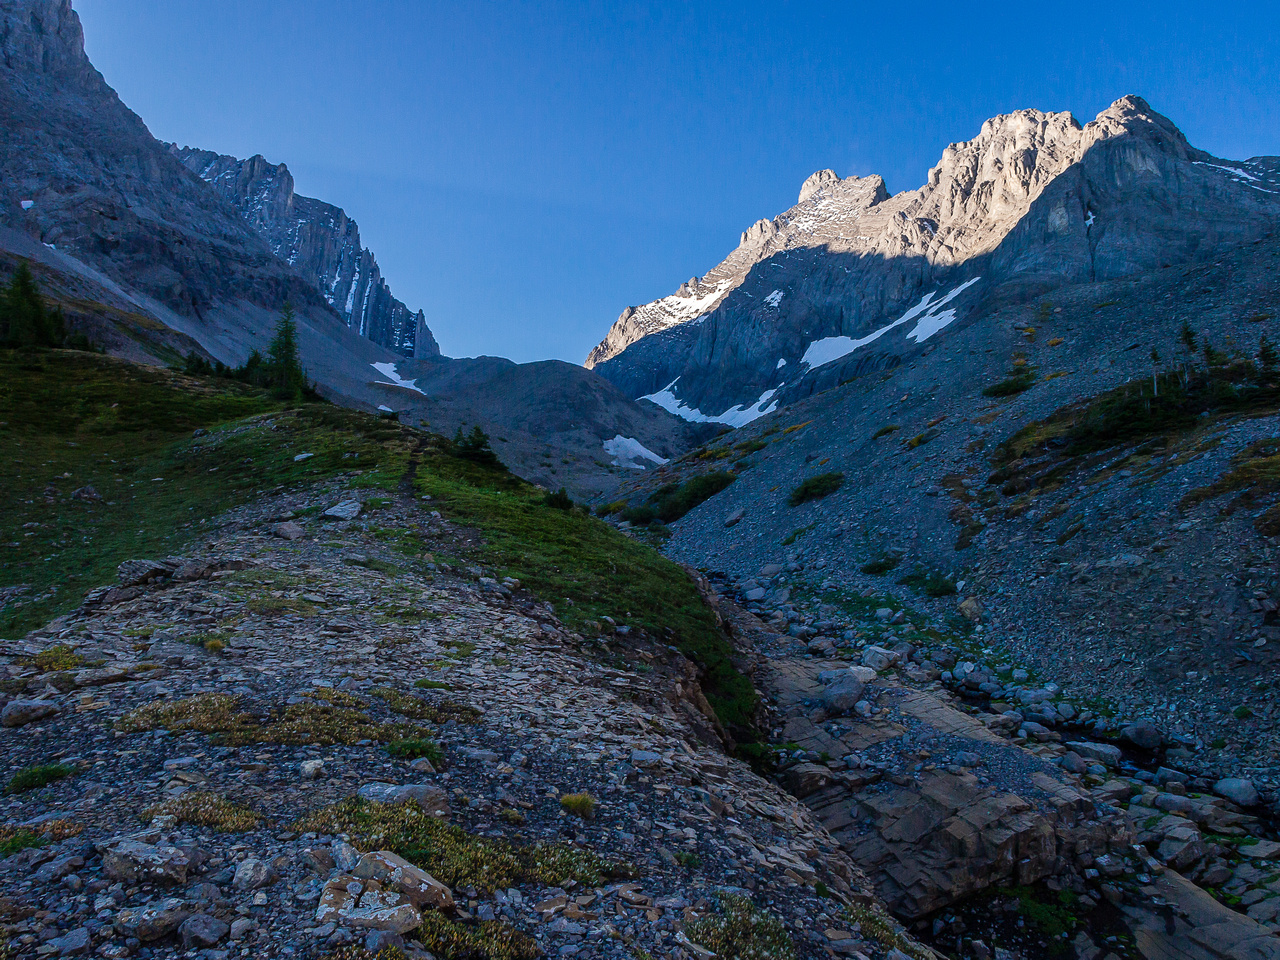 Looking up the old moraines towards the French Glacier which is still out of sight.